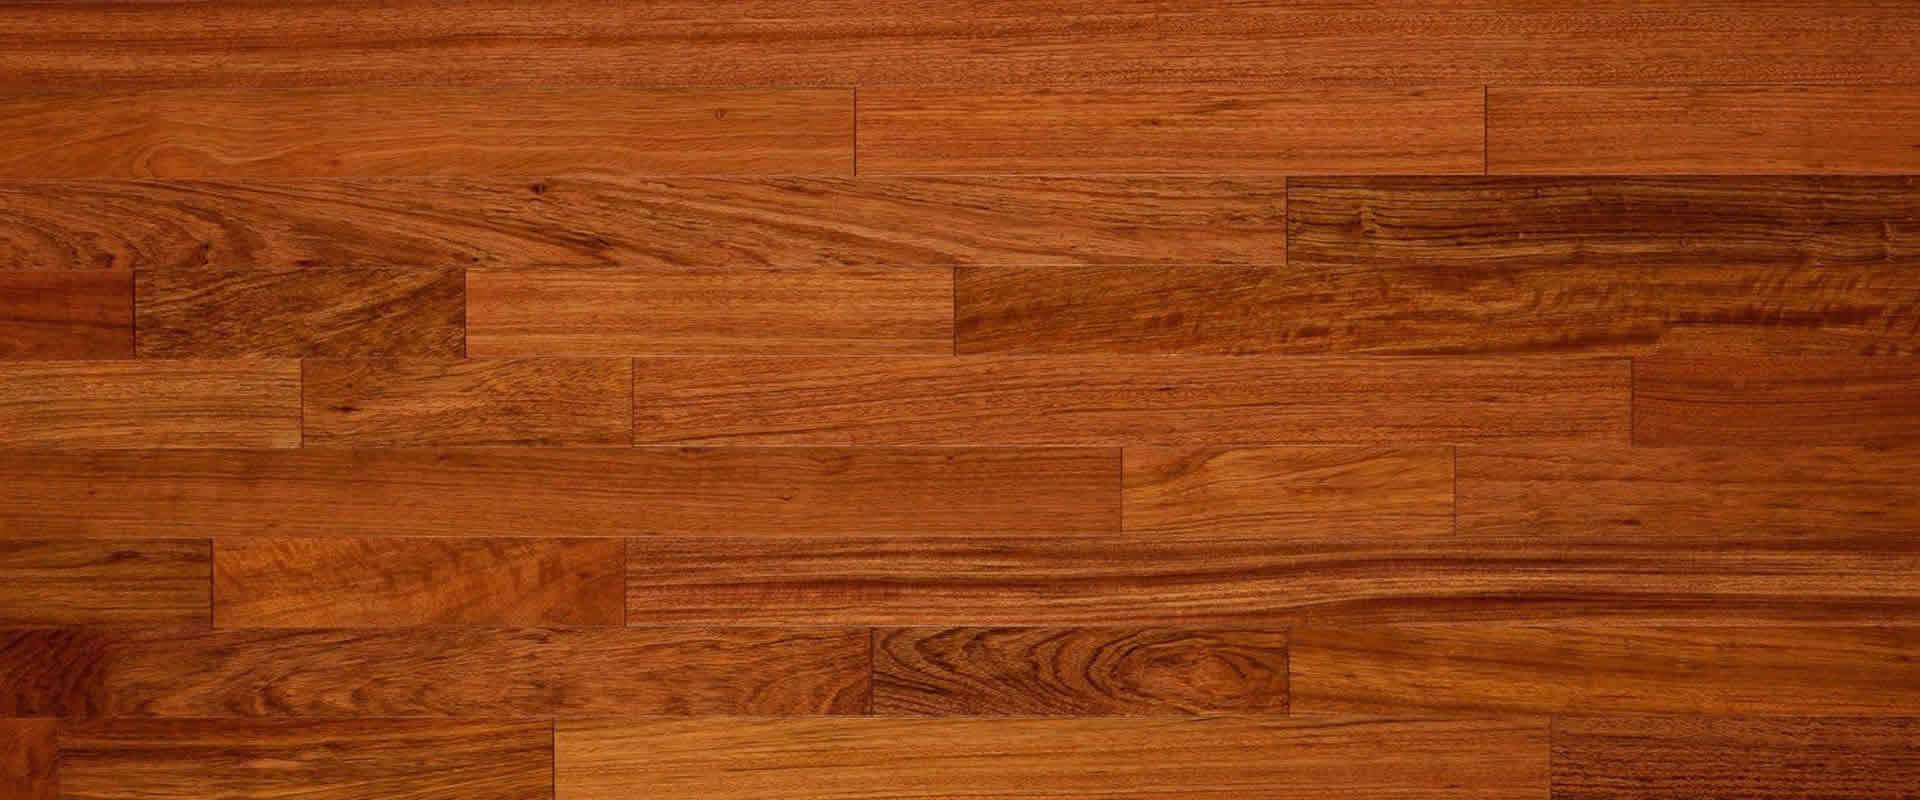 Hardwood floor installation repair refinishing ny nj ct pa Westchester wood flooring